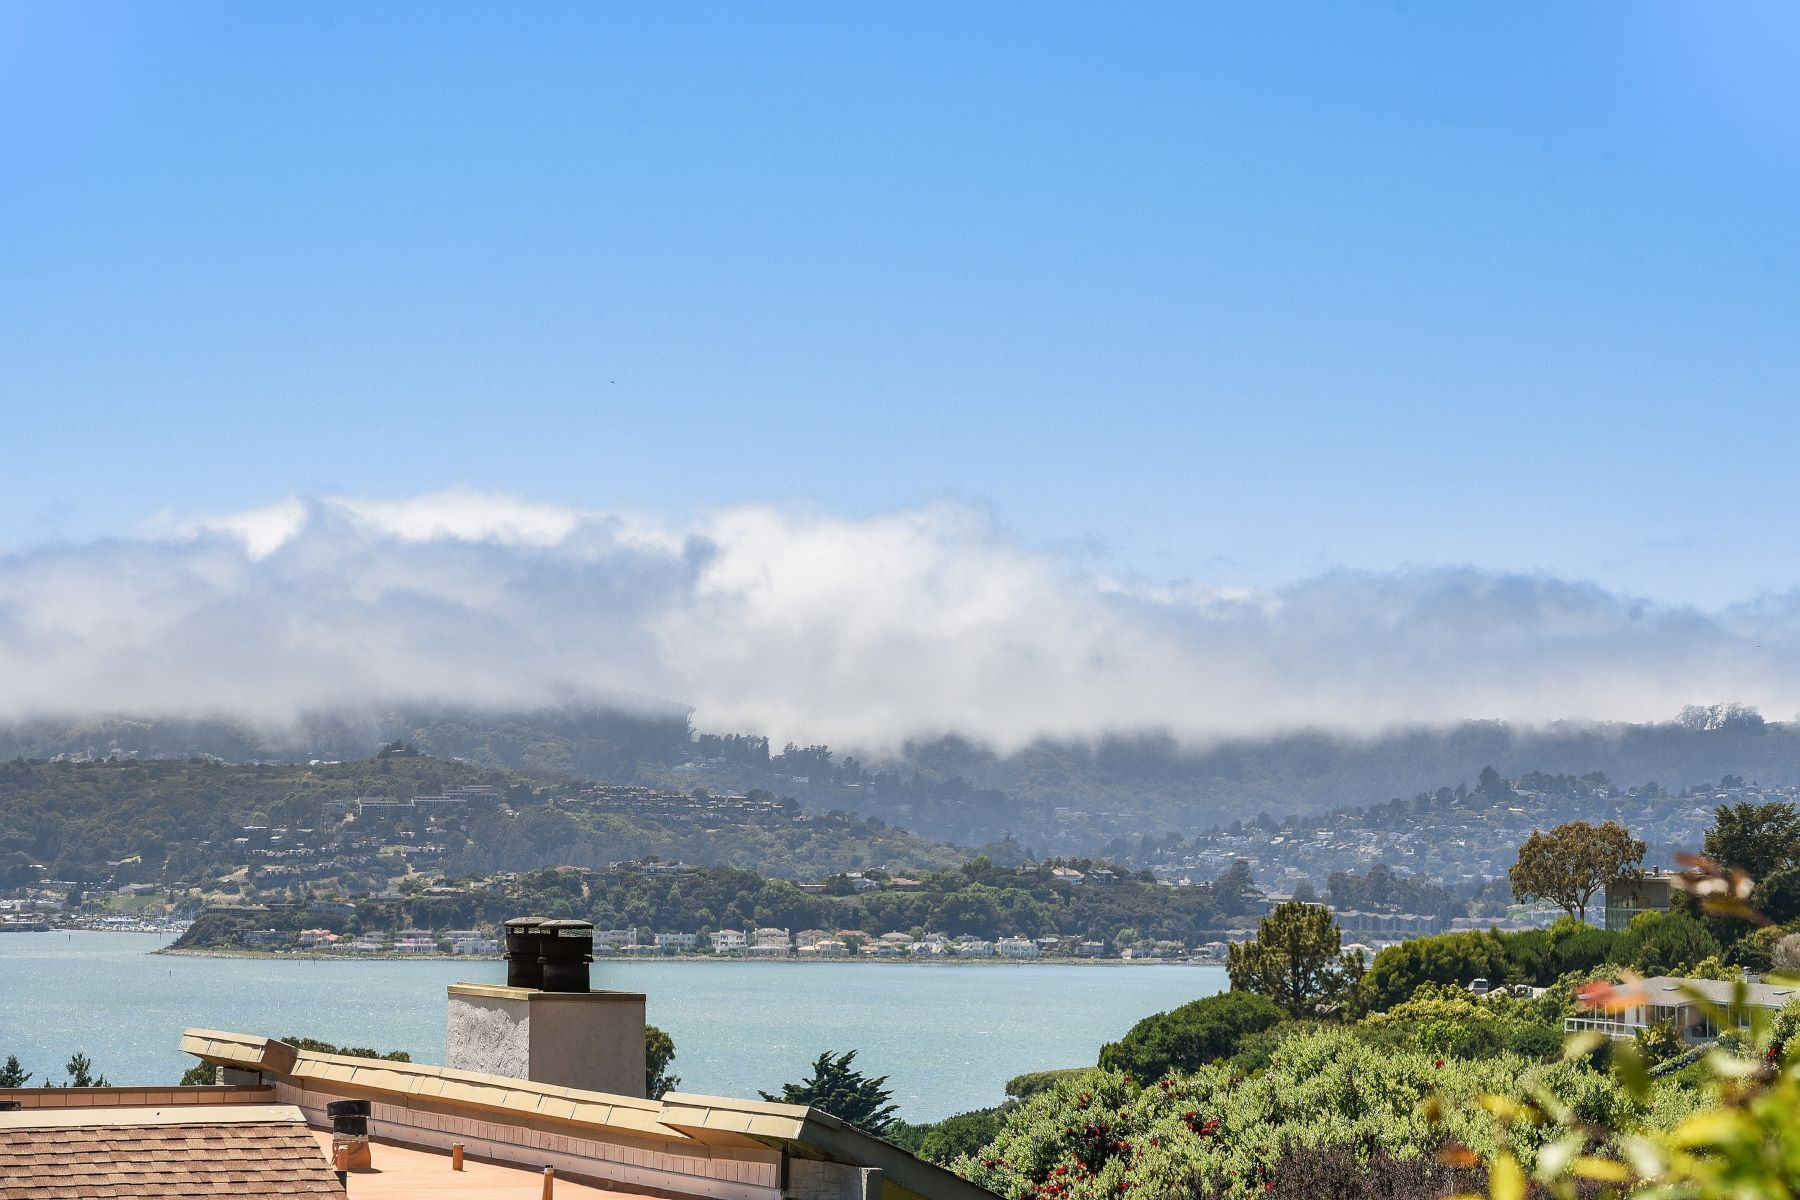 Property for Sale at Stylish Stand Alone Tiburon Townhome with Sweeping Views! 64 Marinero Circle Tiburon, California 94920 United States